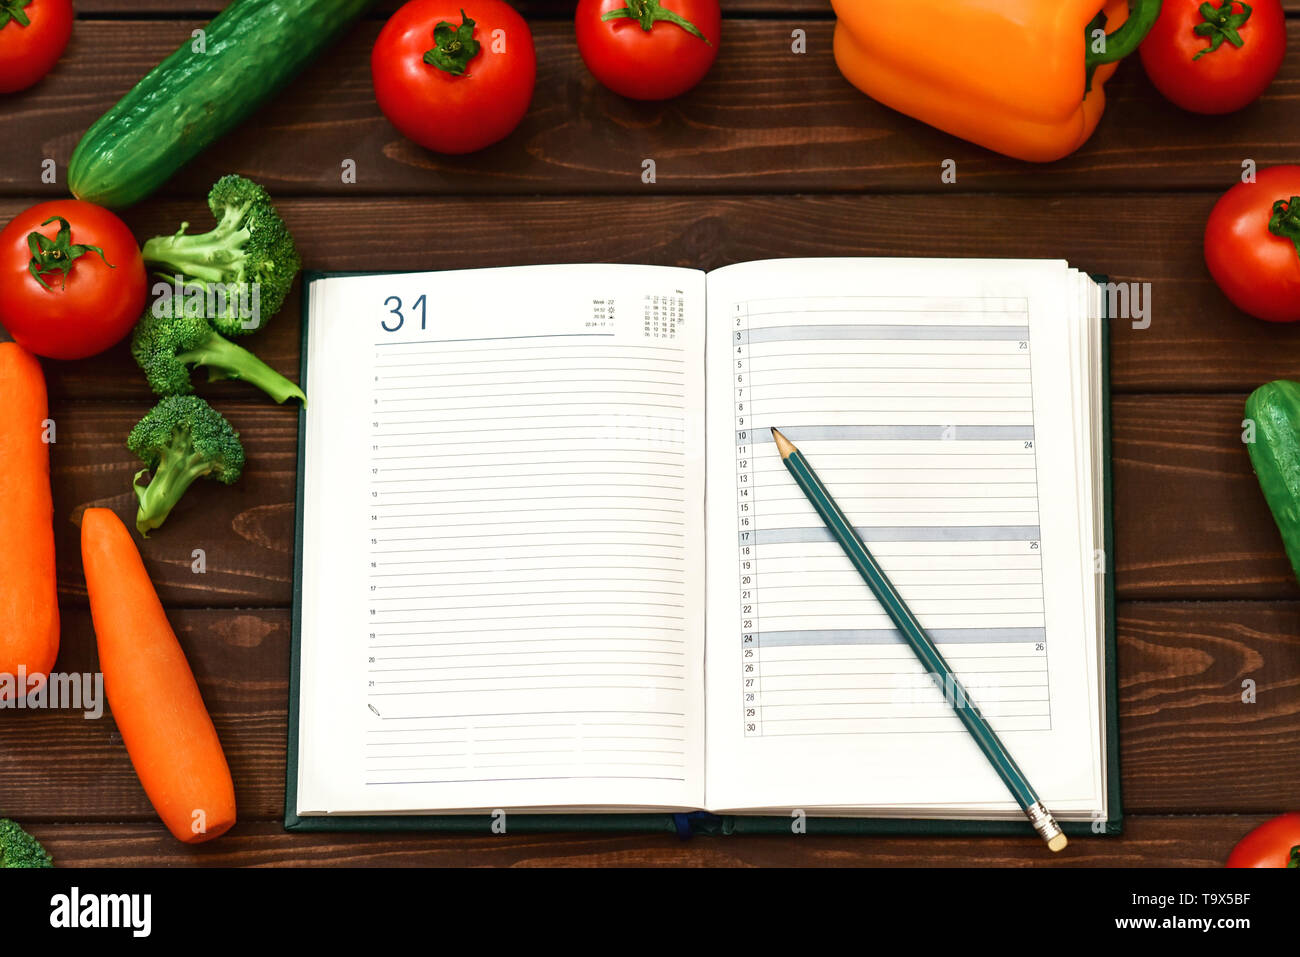 Diet regimen, vegetable image and diet menu plan on Notepad. The guy is recording a dietary program. new cooking recipes - Stock Image